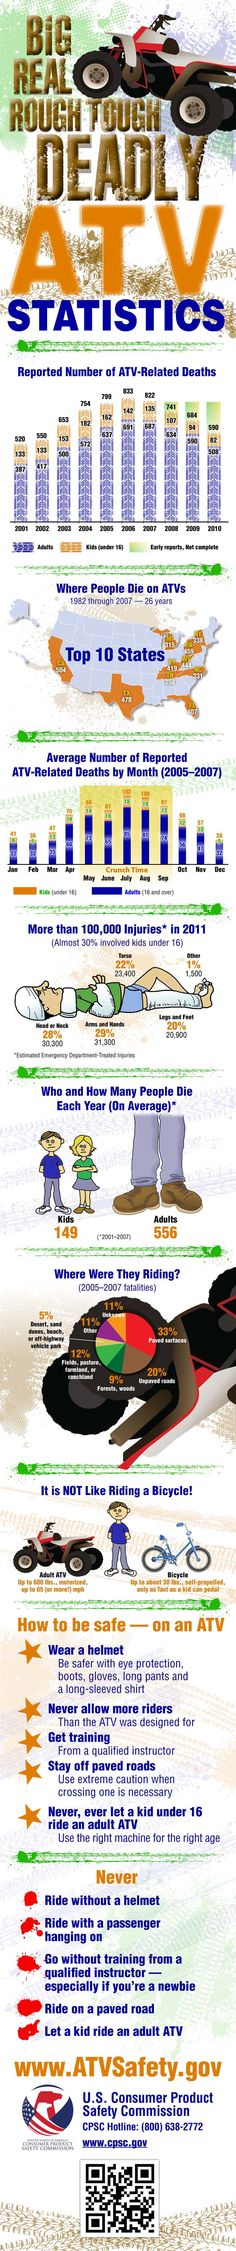 30% of the 100,000+ #ATV injuries in 2011 involved kids under 16. Always practice ATV safety! Learn more with this #infographic from CPSC.